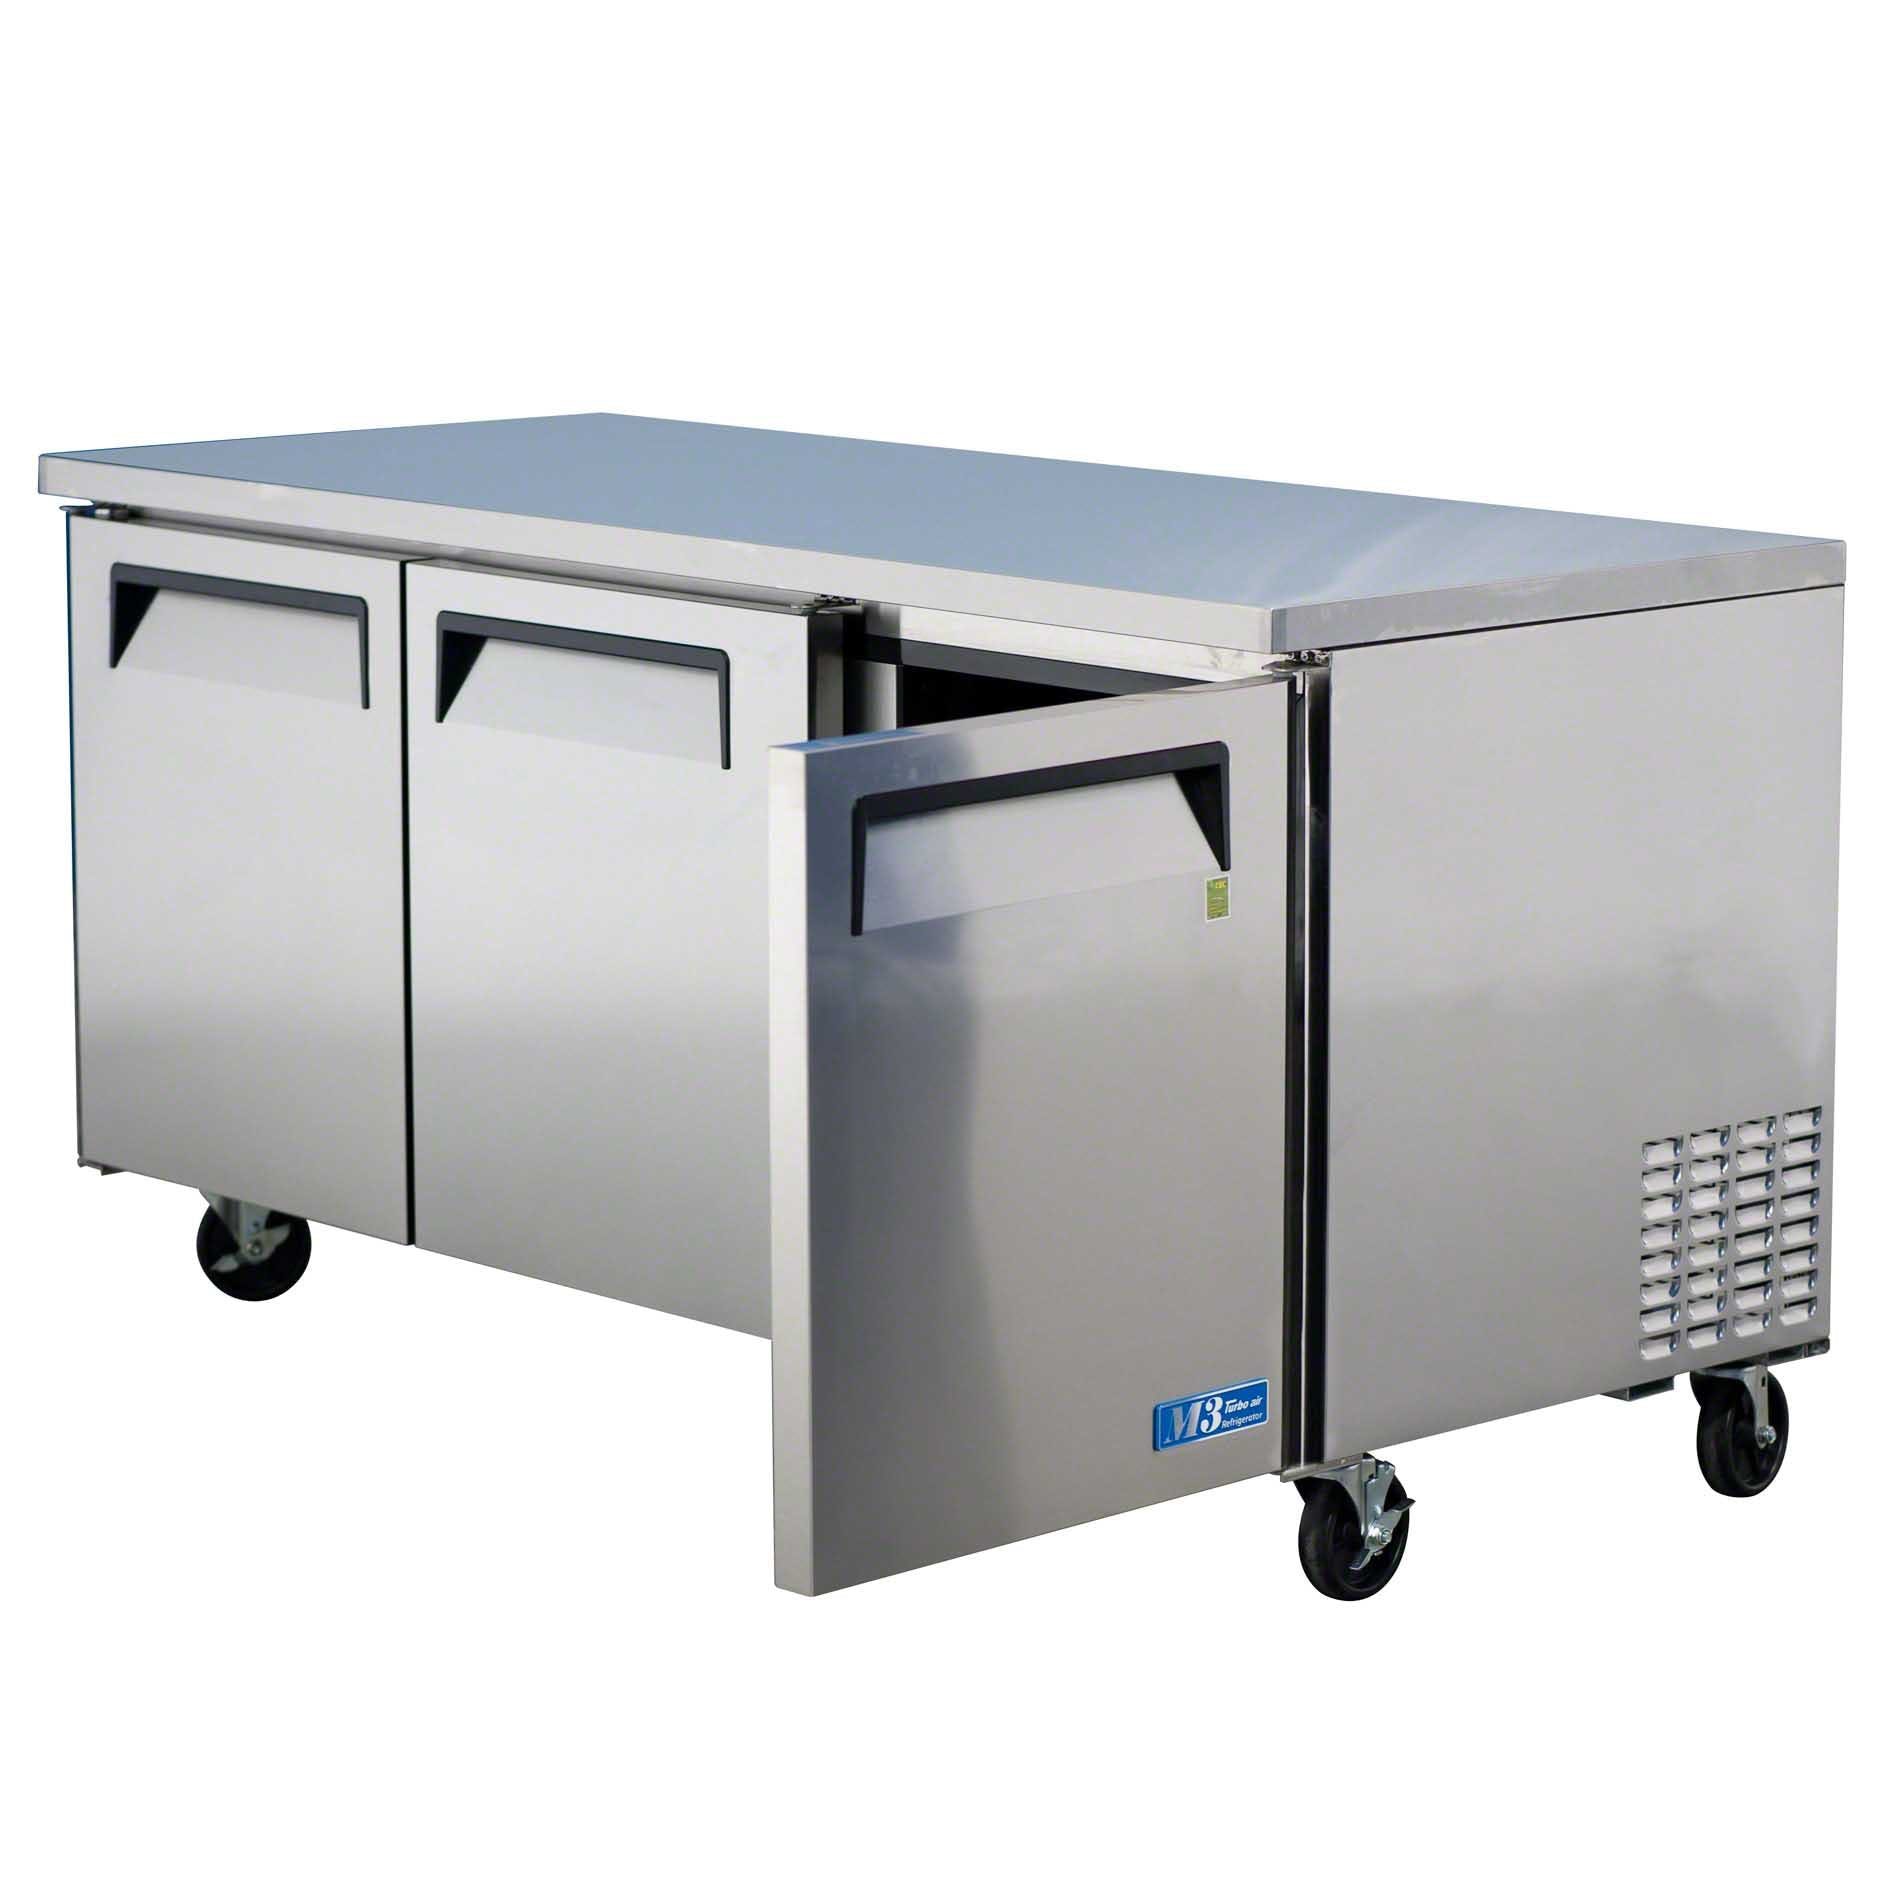 """Turbo Air - MUR-72 73"""" Undercounter Refrigerator – M3 Series - sold by Food Service Warehouse"""